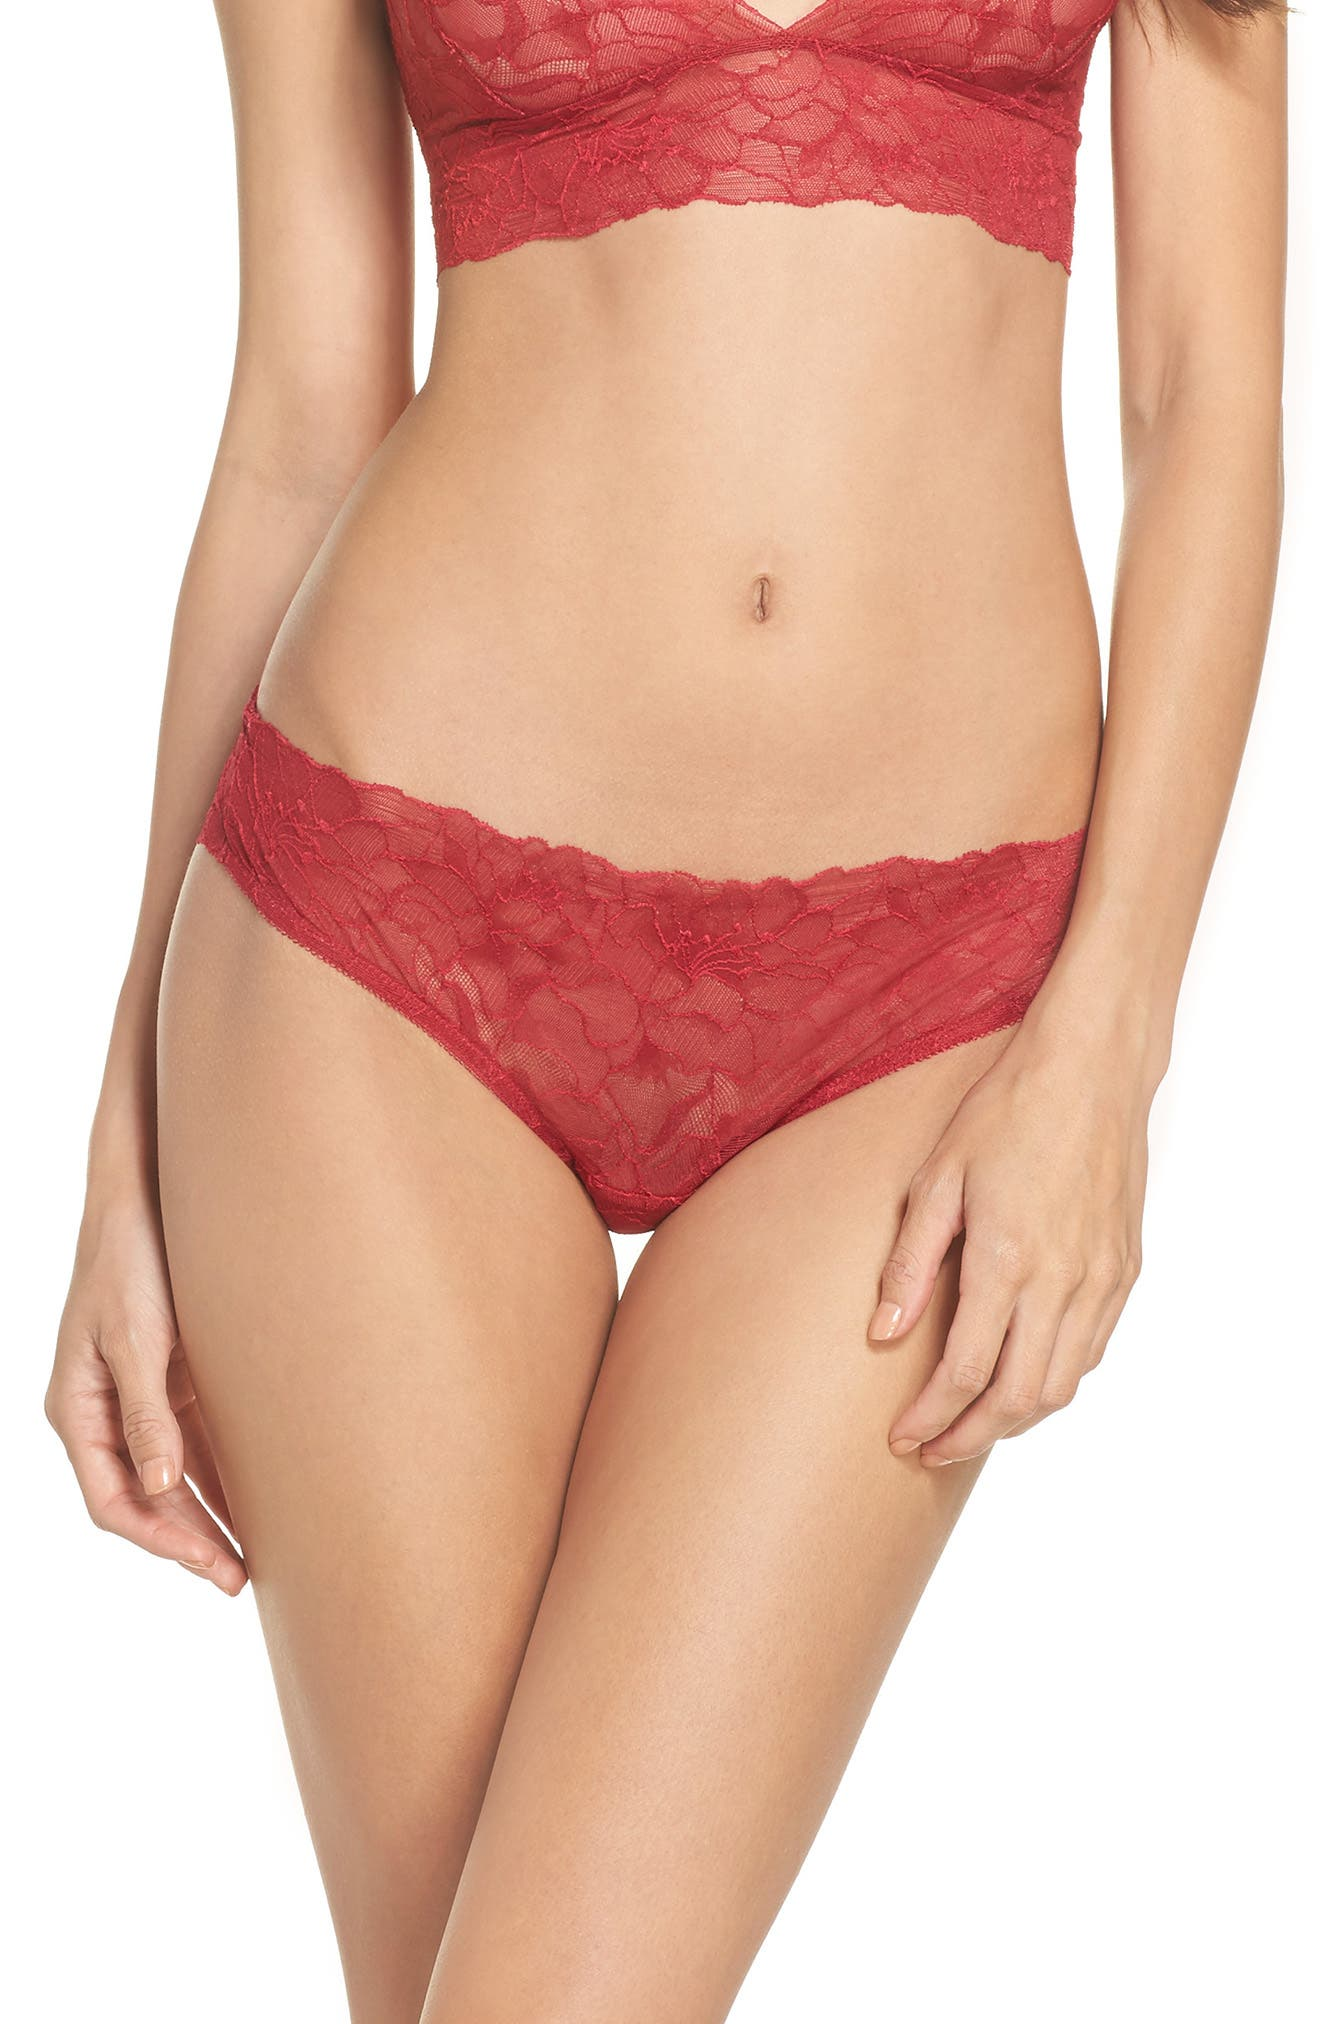 All Lace Glamour Panties,                             Main thumbnail 1, color,                             Scarlet